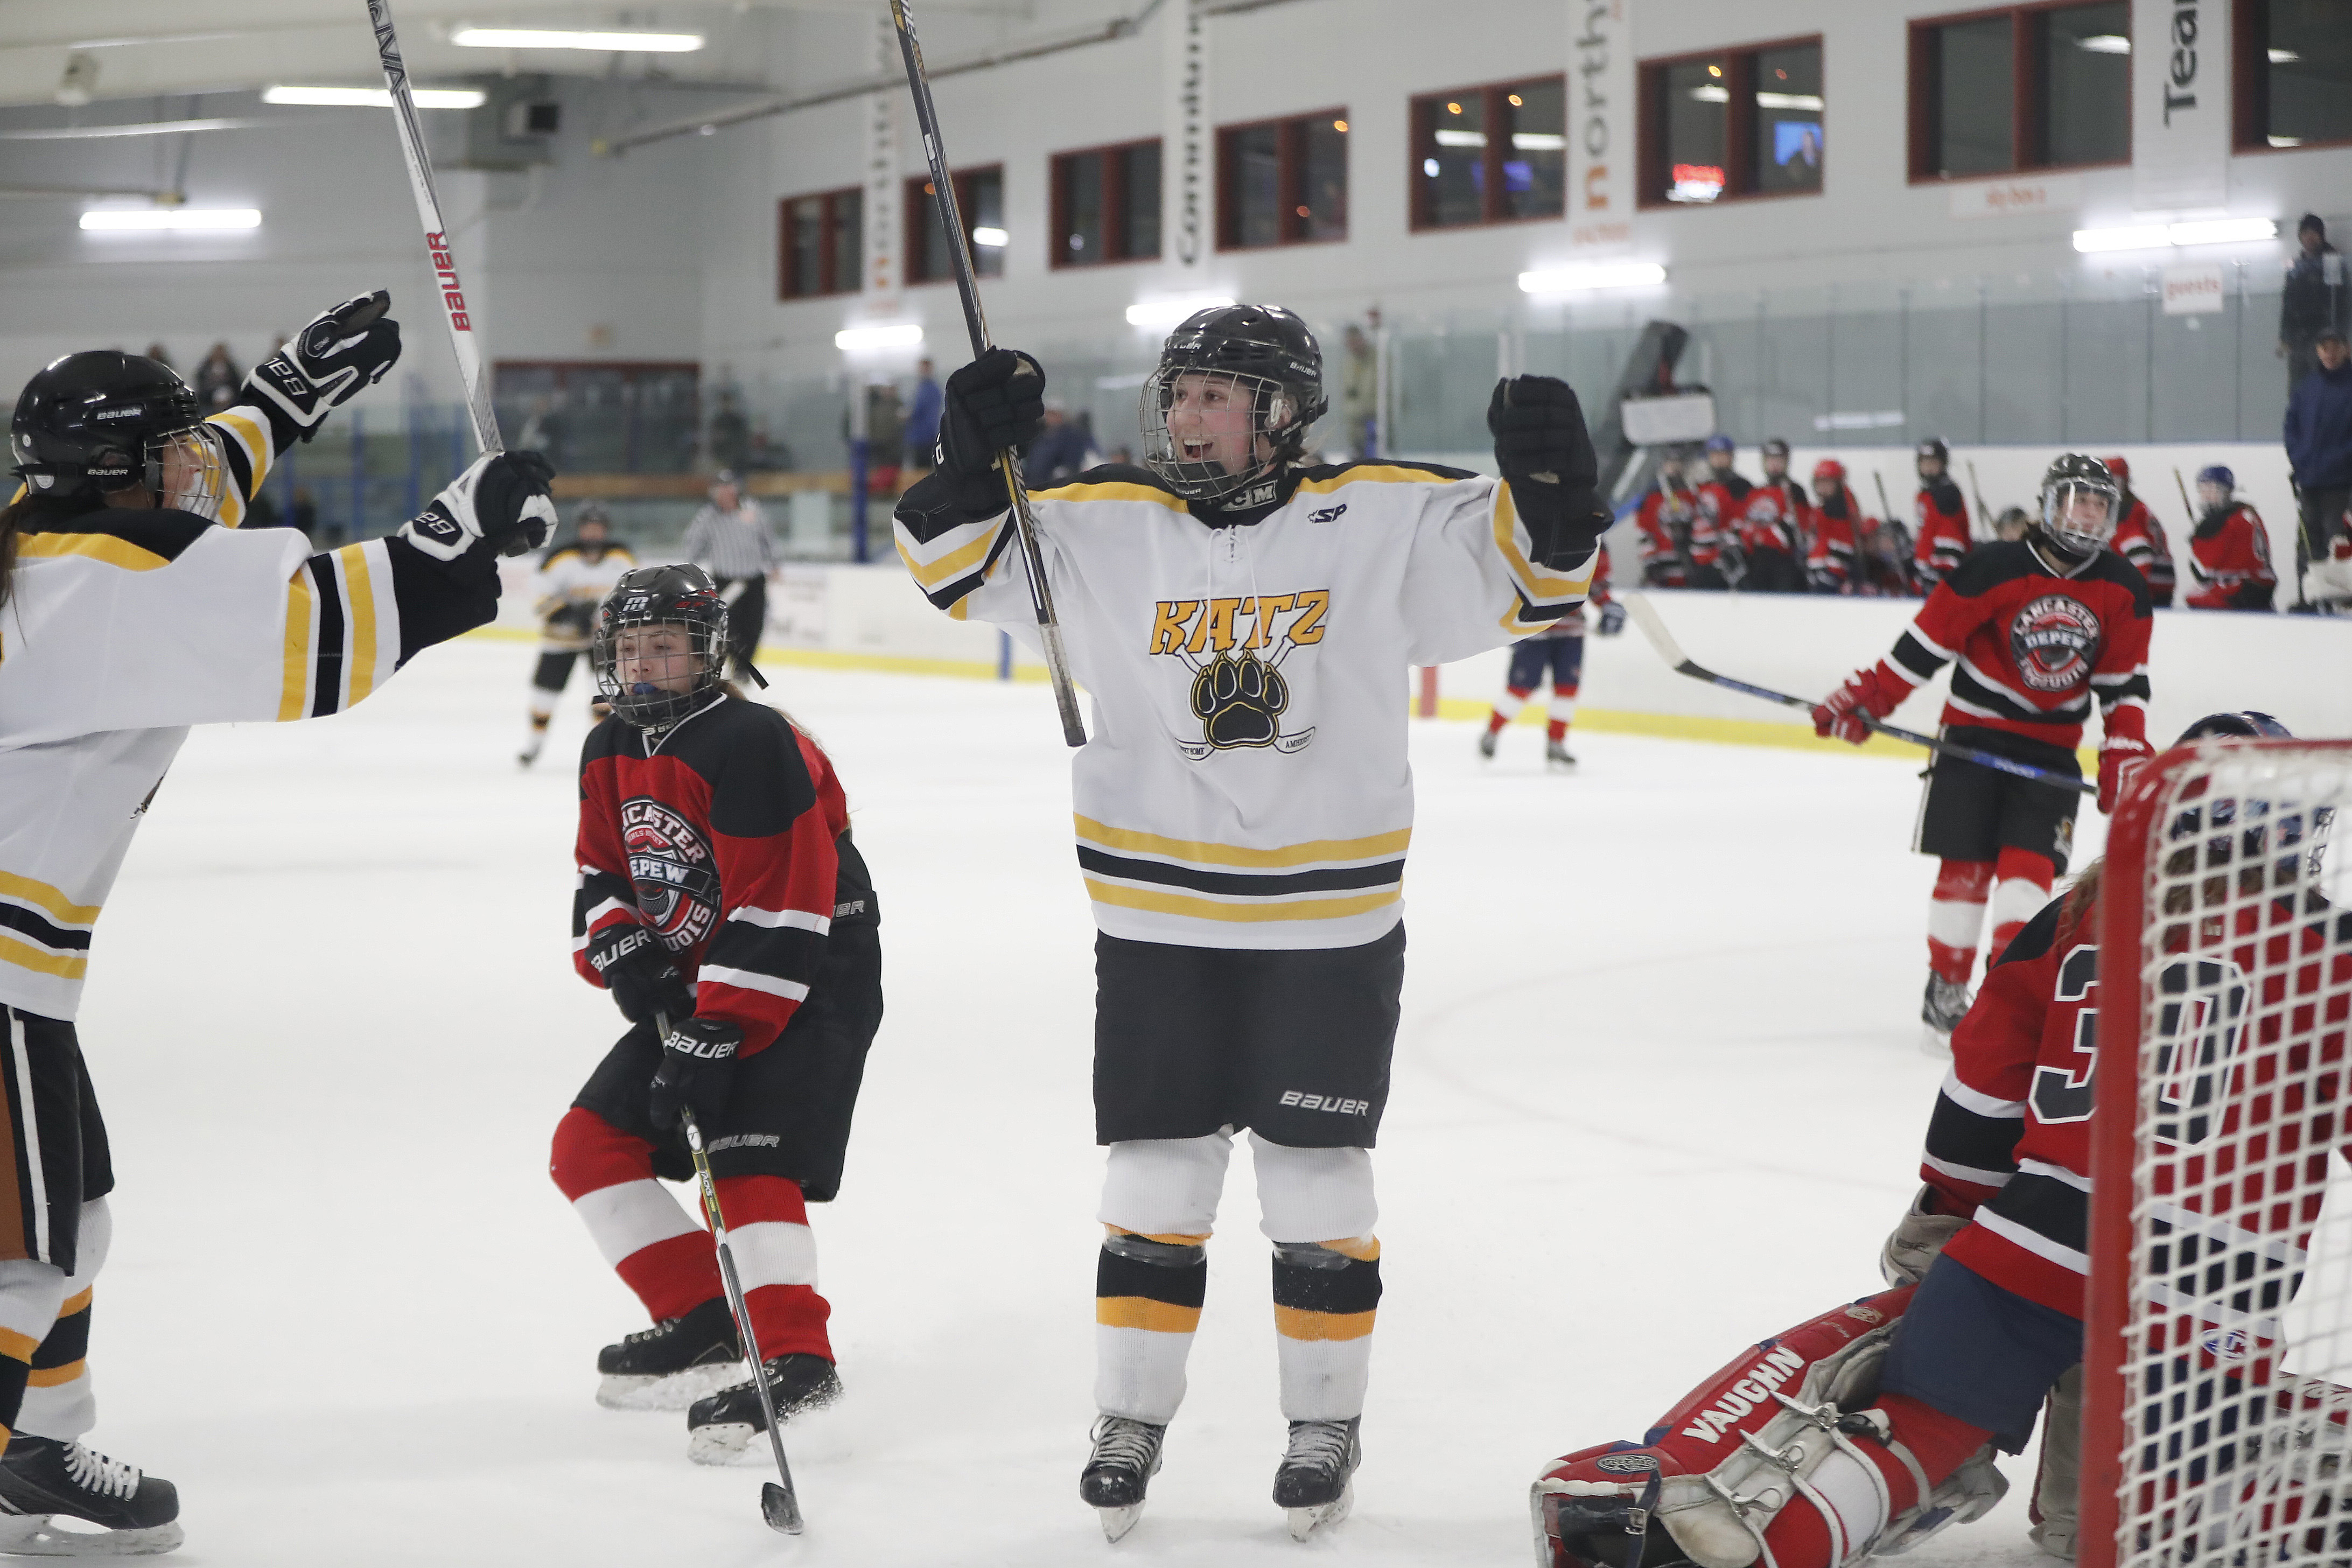 Julia Mings celebrates after scoring her 100th career goal during Clarence/Amherst/Sweet Home's girls hockey quarterfinal win over Lancaster/Iroquois/Depew during the Section VI tournament Thursday at Northtowns Center in Amherst. (Harry Scull Jr./Buffalo News)